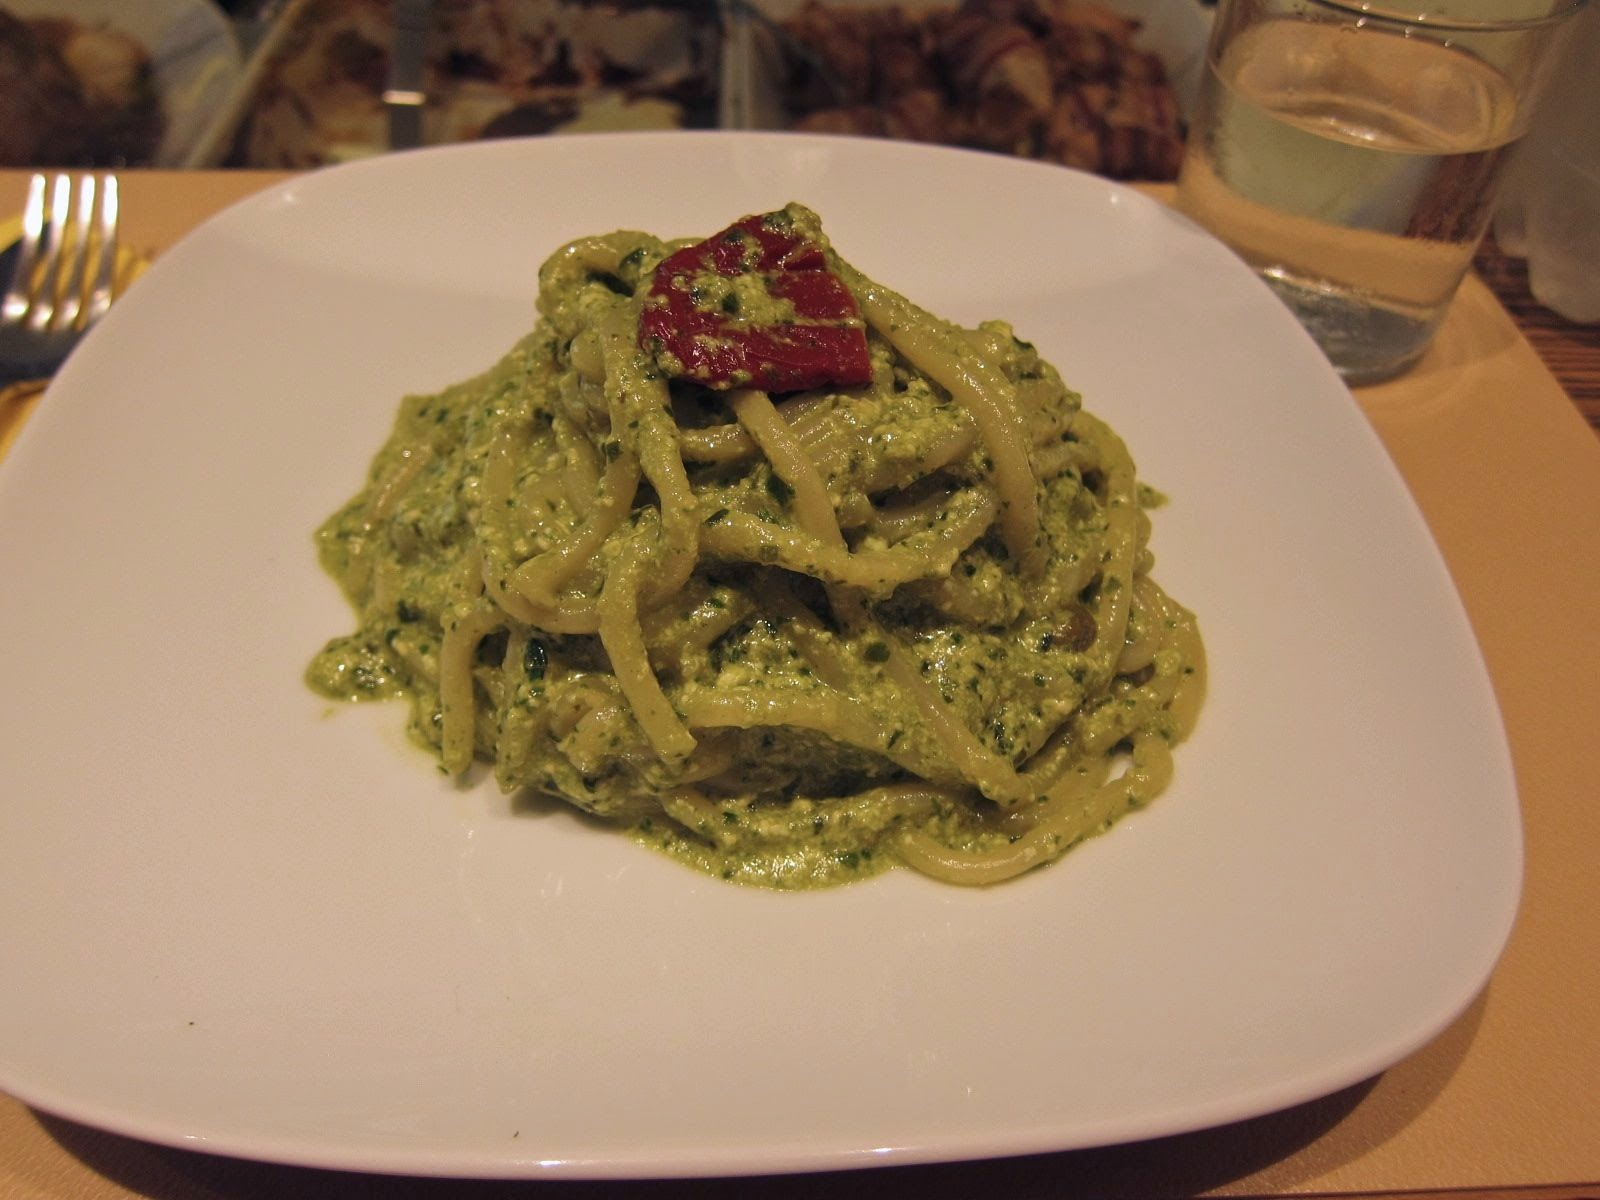 Spaghetti in pesto sauce and sun-dried tomatoes at Zeb